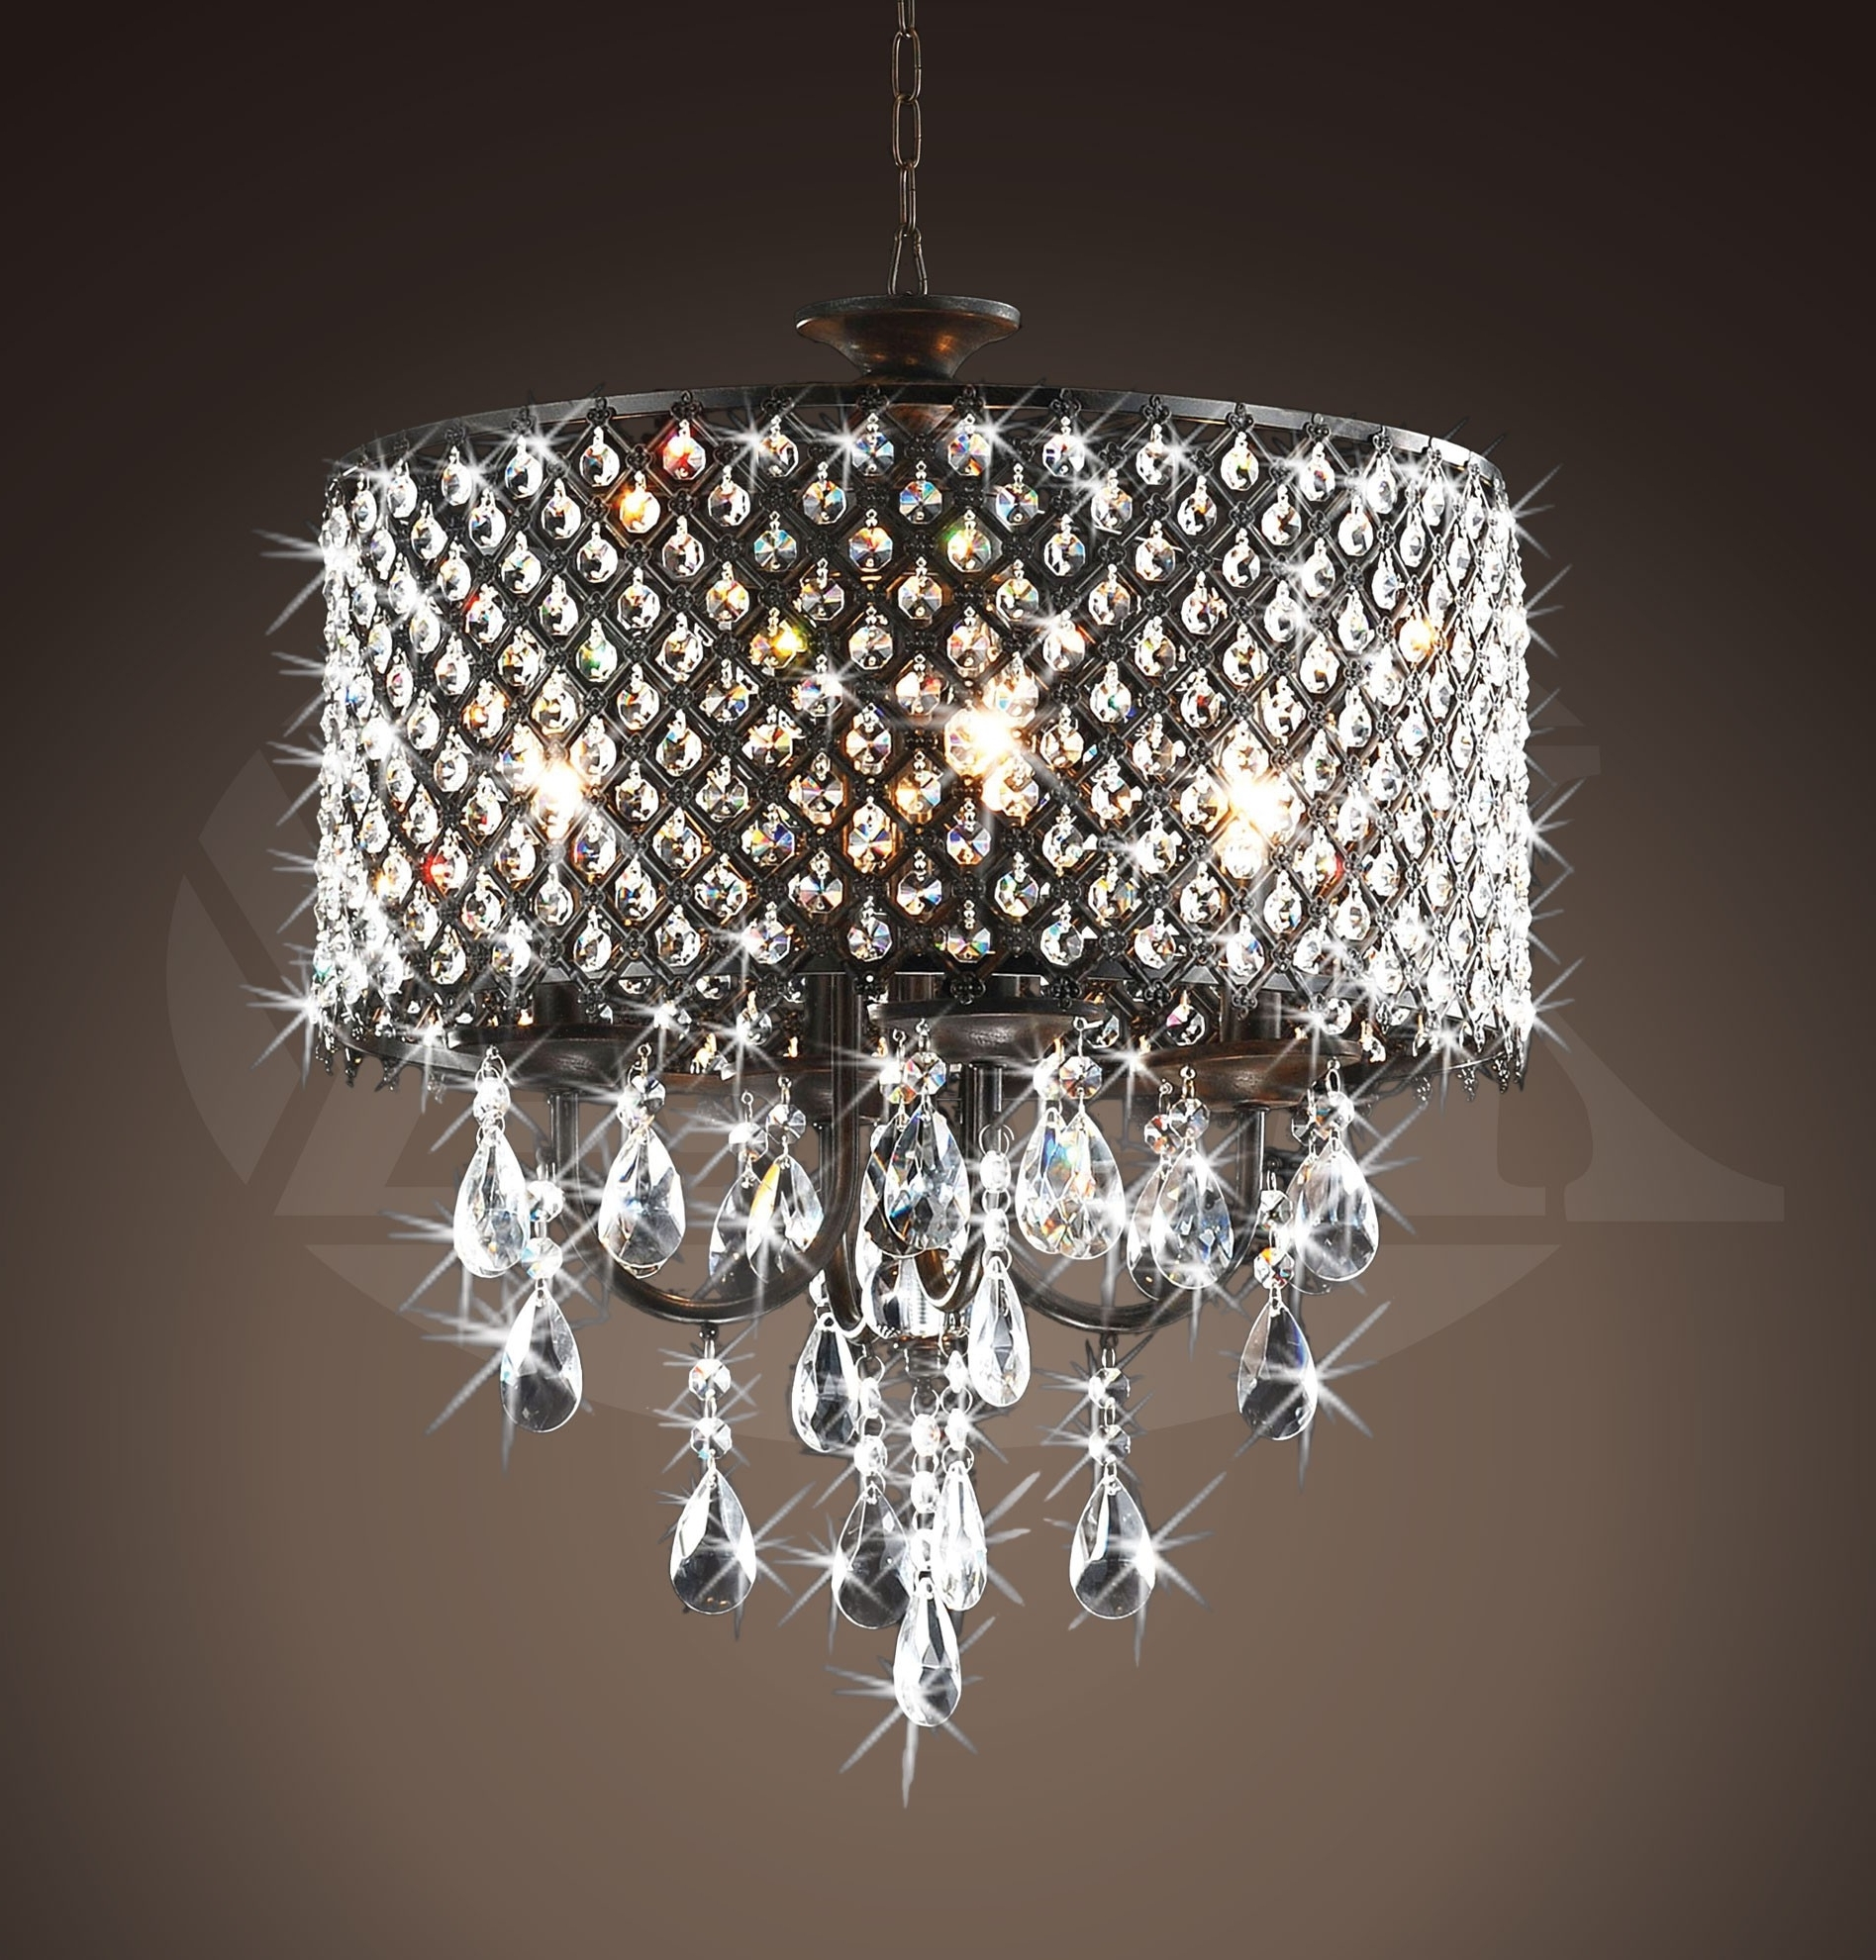 Funky Chandeliers Pertaining To Trendy Light : Christal Chandelier Rachelle Light Round Antique Bronze (View 10 of 15)